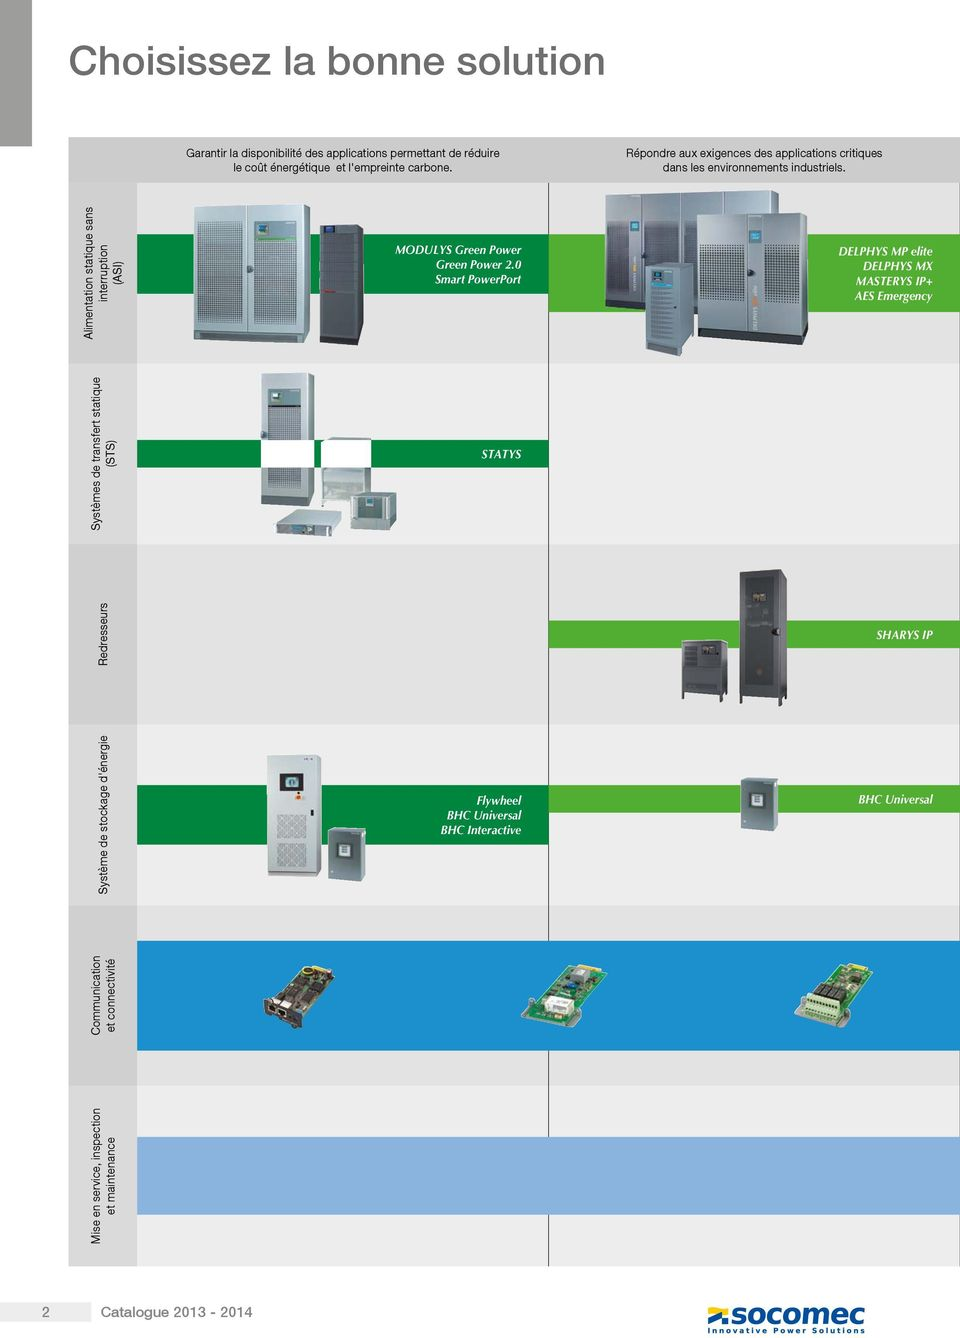 Alimentation statique sans interruption (ASI) MODULYS Green Power Green Power 2.